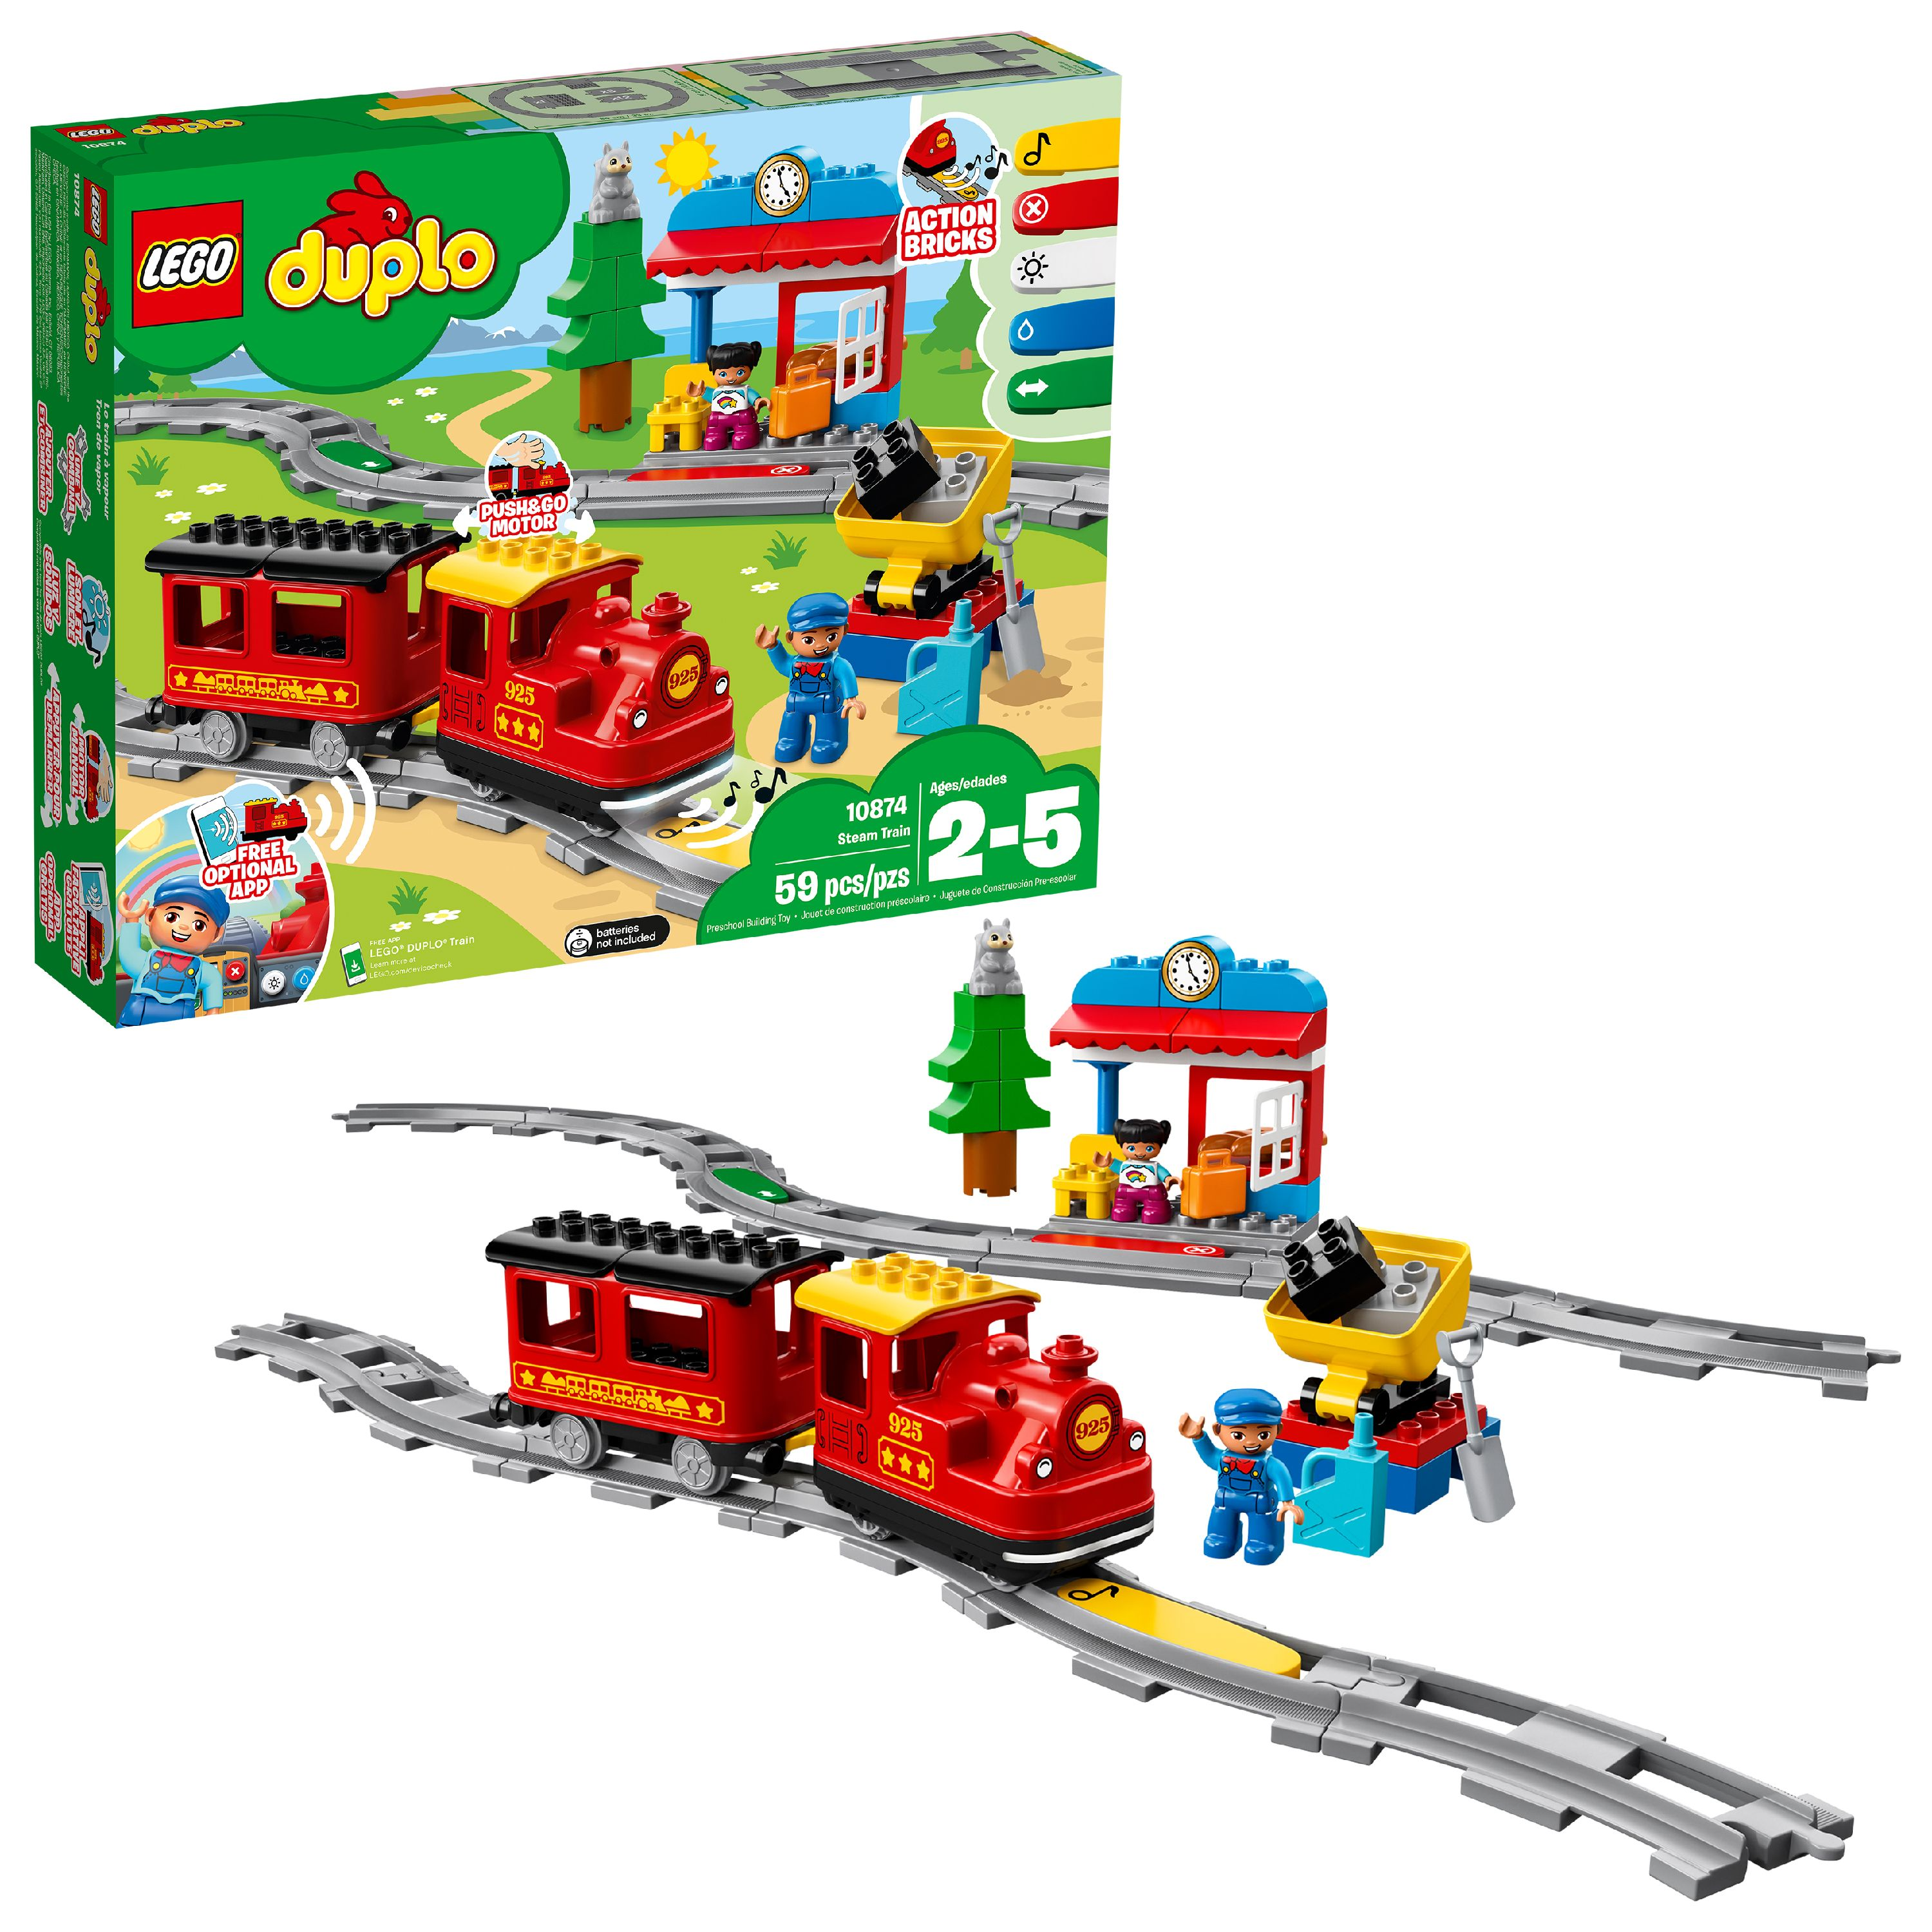 LEGO DUPLO Town Steam Train 10874 Building Set (59 Pieces)